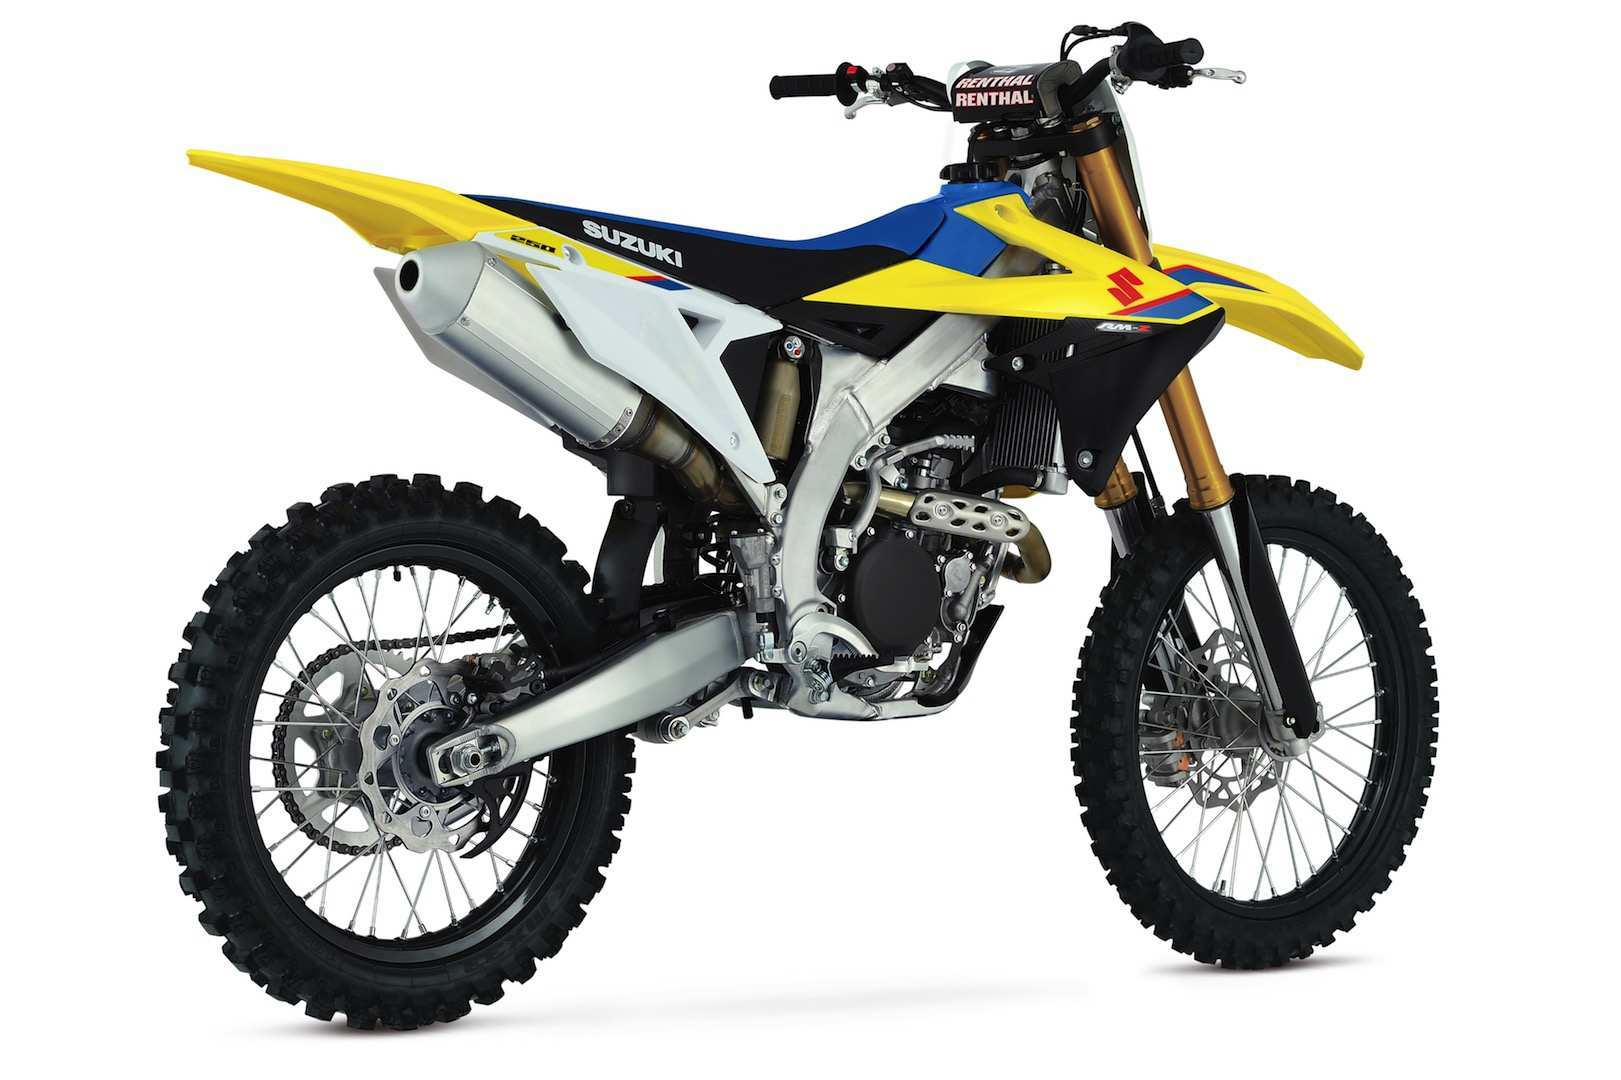 98 All New 2019 Suzuki Rm Picture with 2019 Suzuki Rm